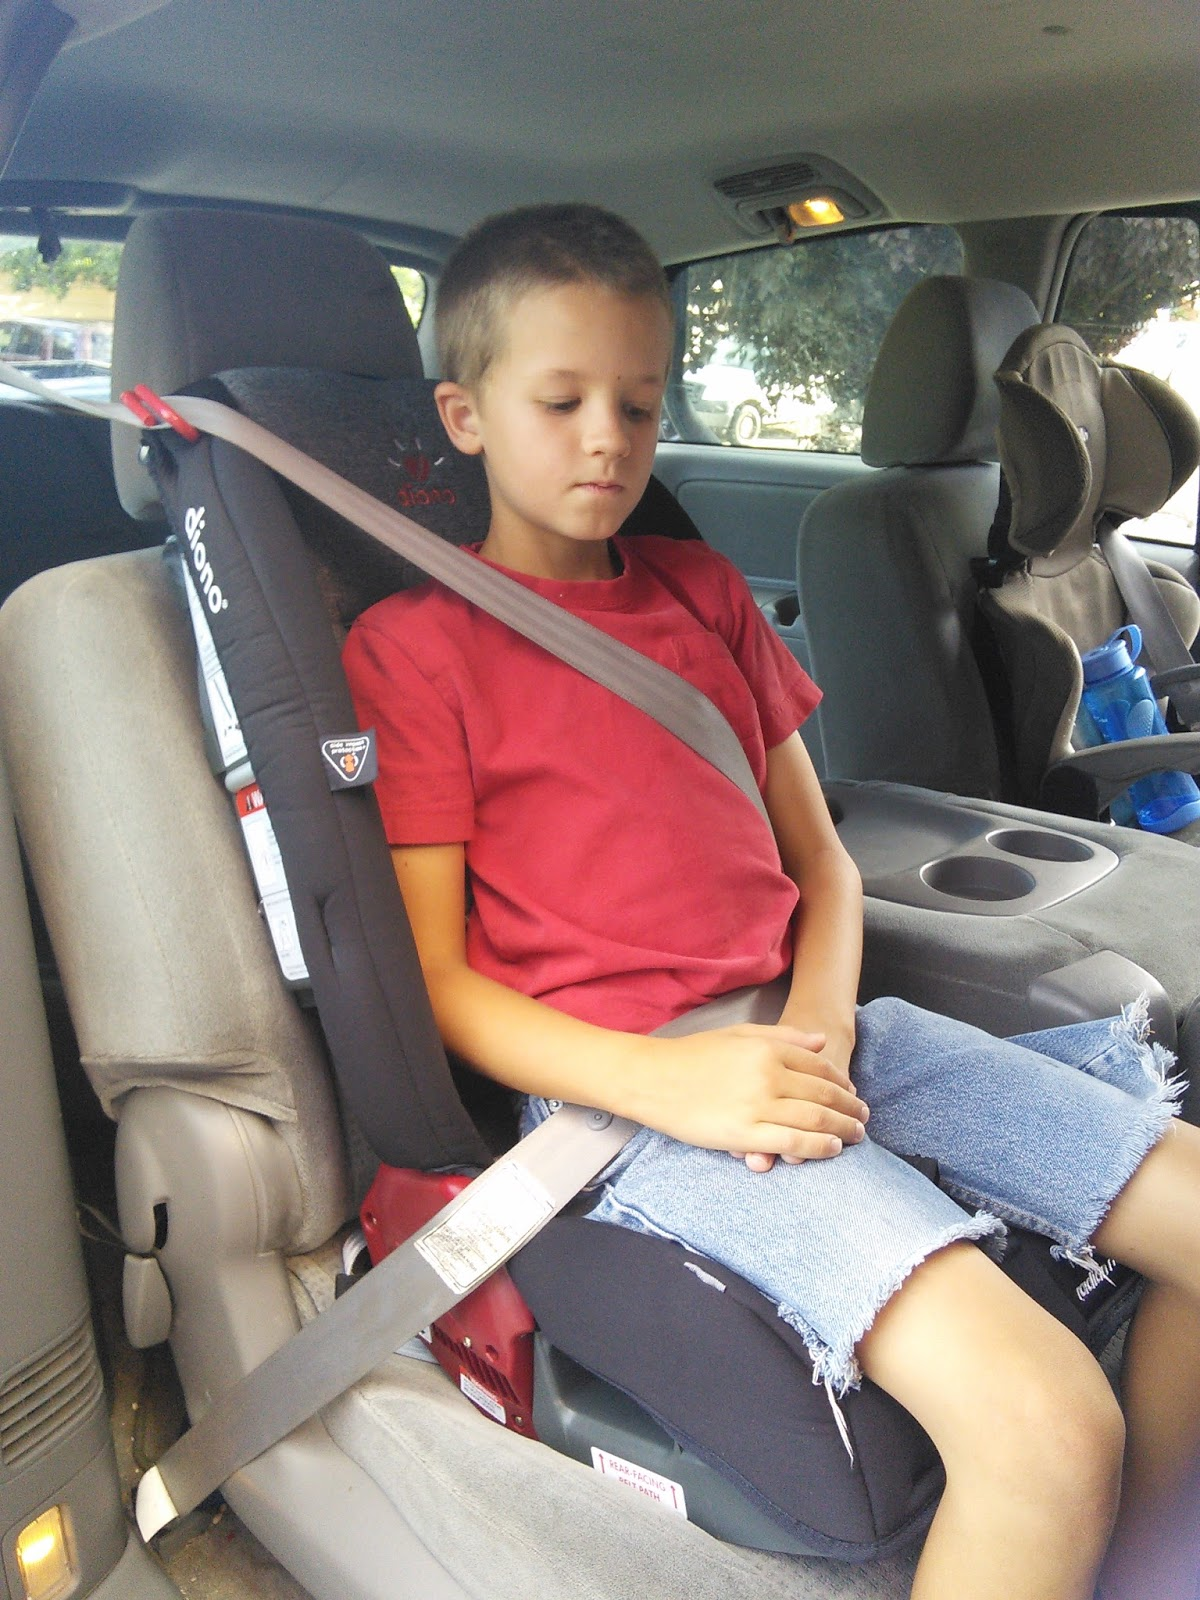 Booster Chairs For Kids How Revolving Chair Works Keep Your Older Children Safe In The Car By Using A